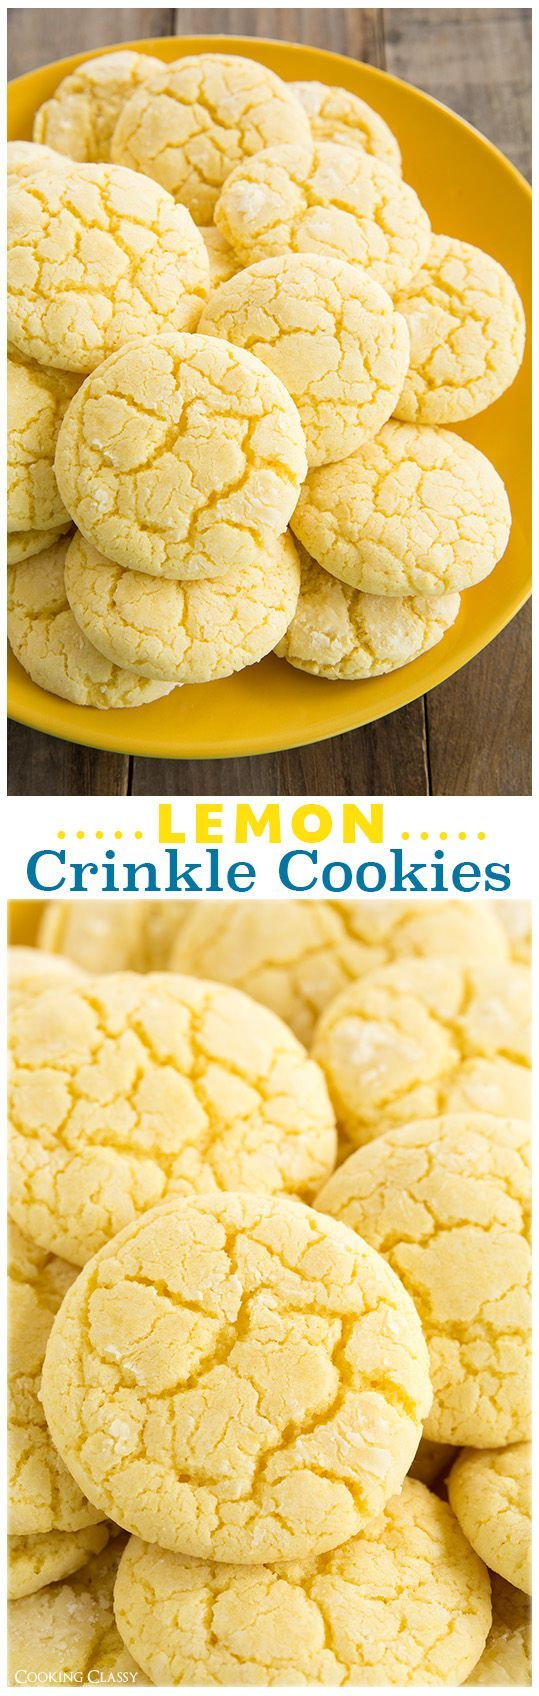 Lemon Crinkle Cookies (from scratch) - these are definitely a new favorite! I couldn't stop eating these! So lemony and their texture is amazing. They just melt in your mouth when they are warm out of the oven.